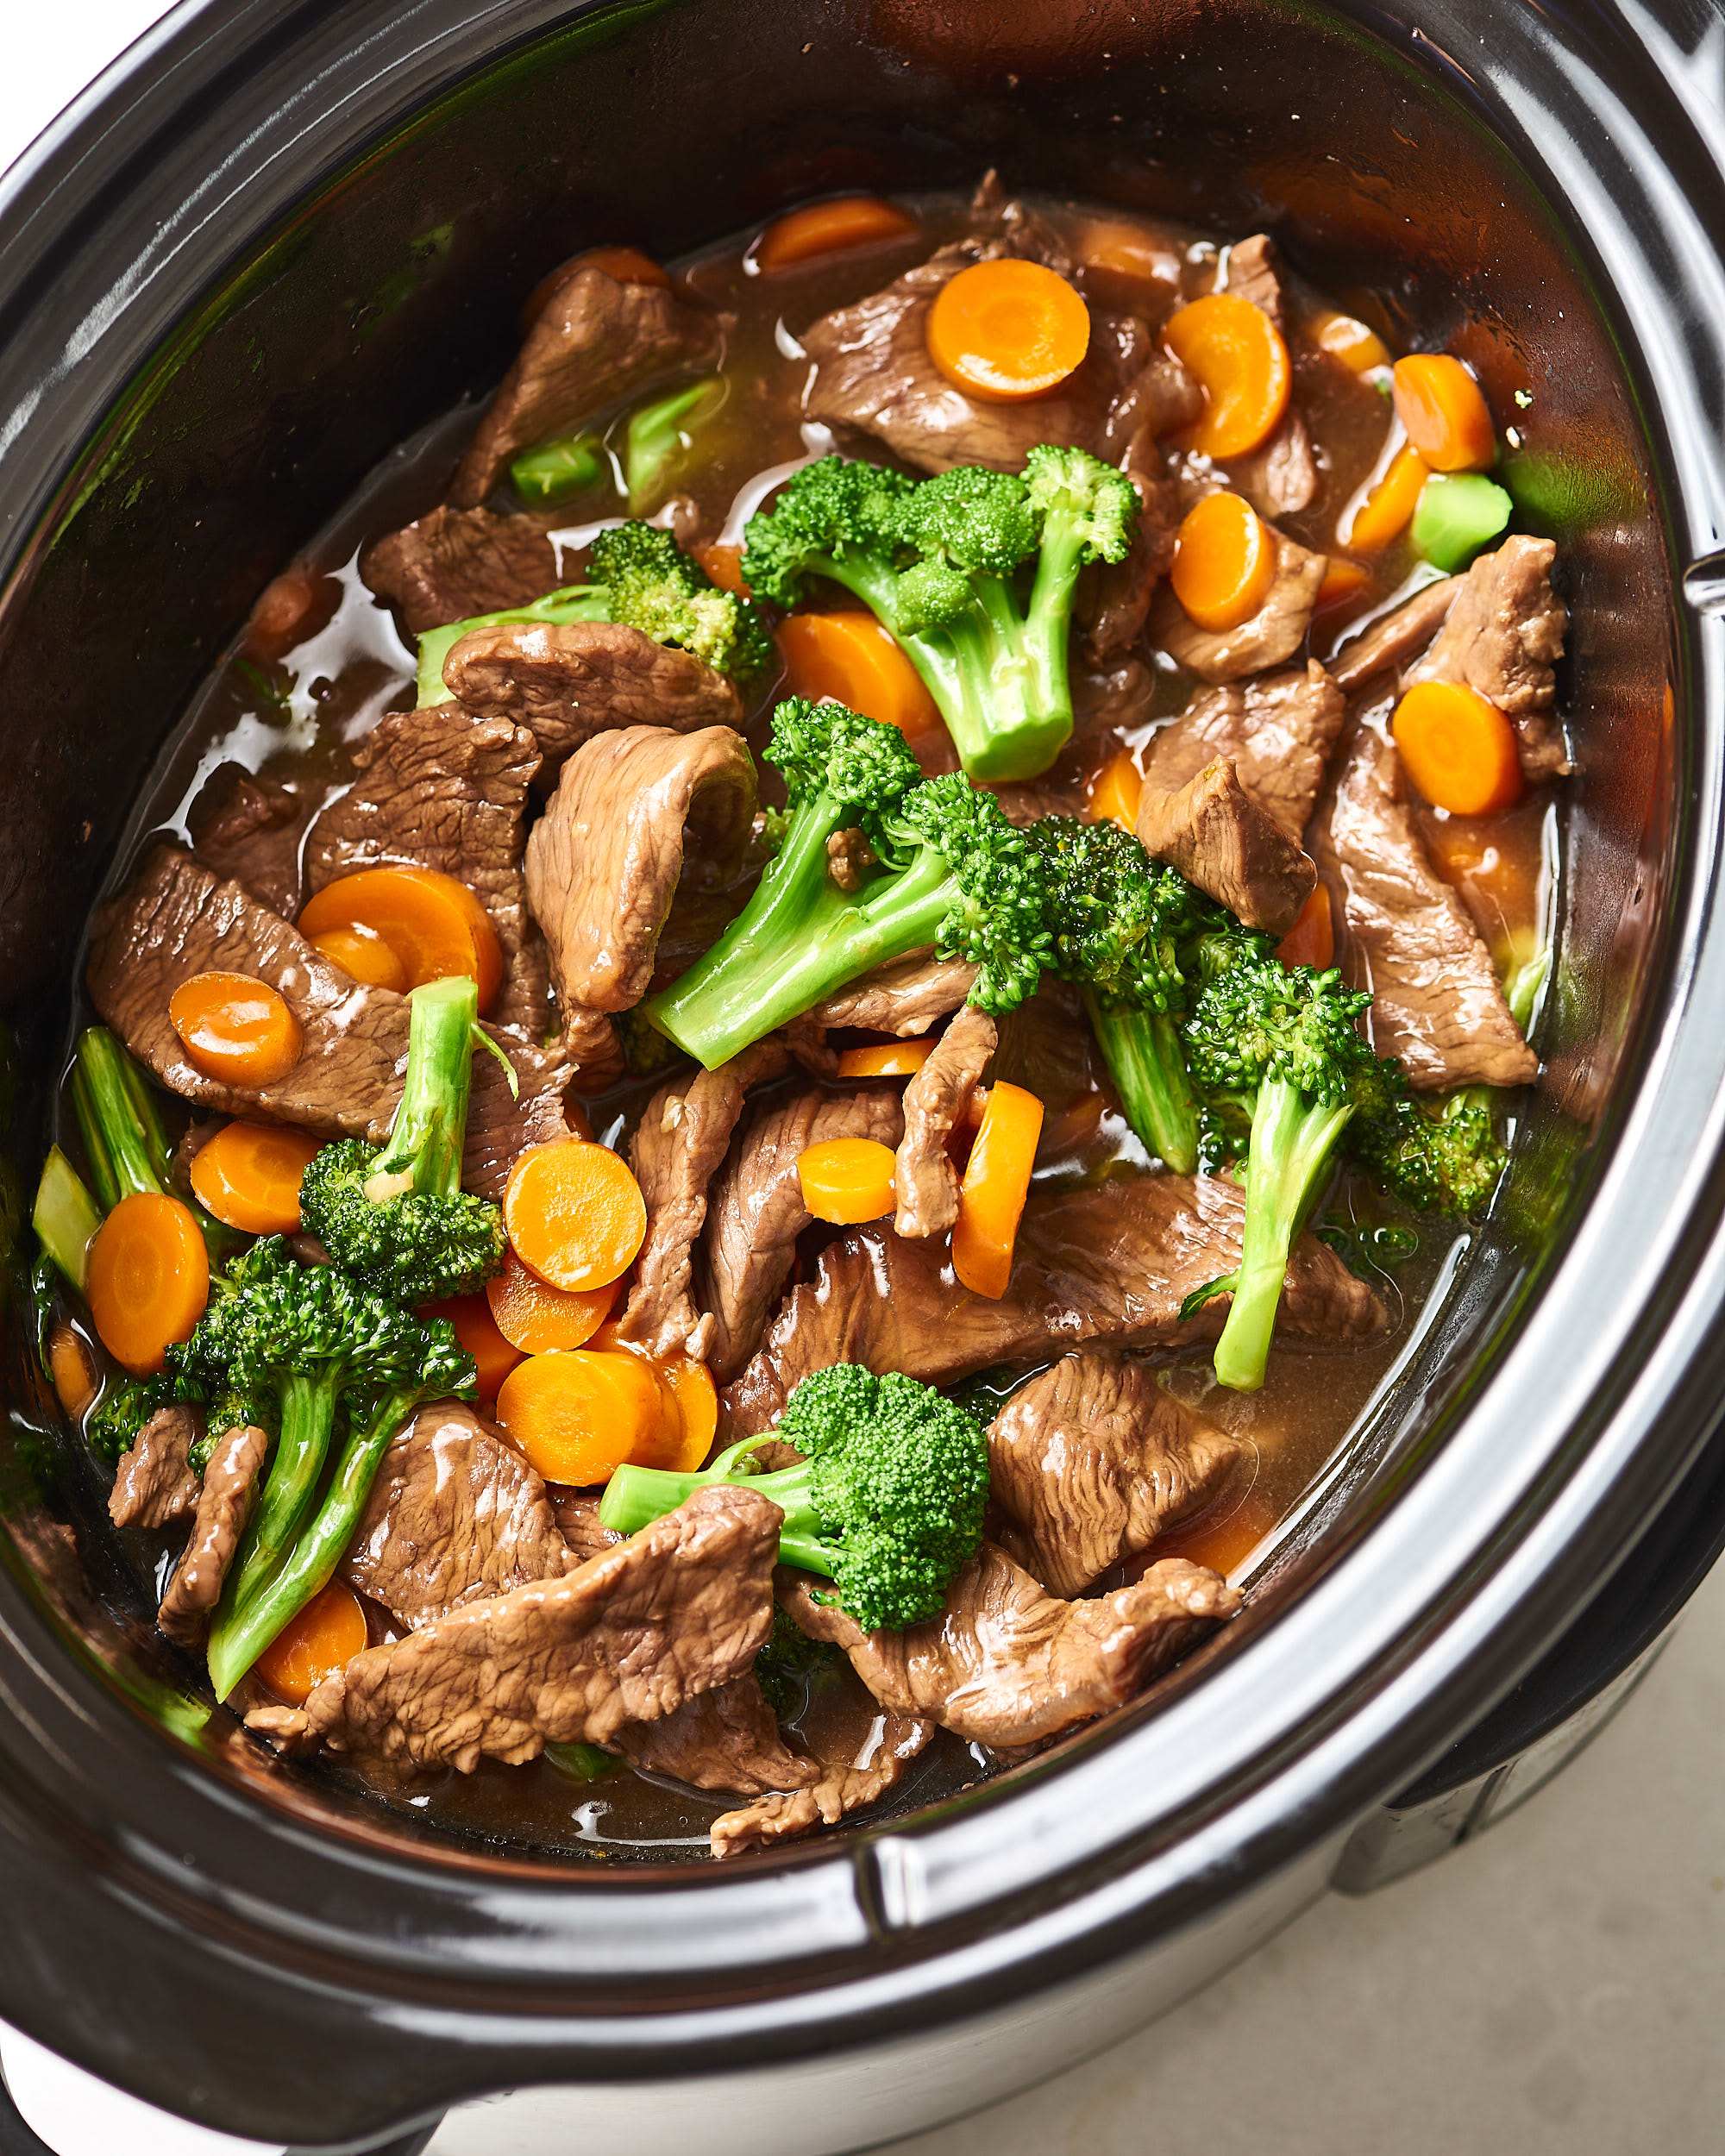 This Slow Cooker Beef and Broccoli Is Better than Takeout